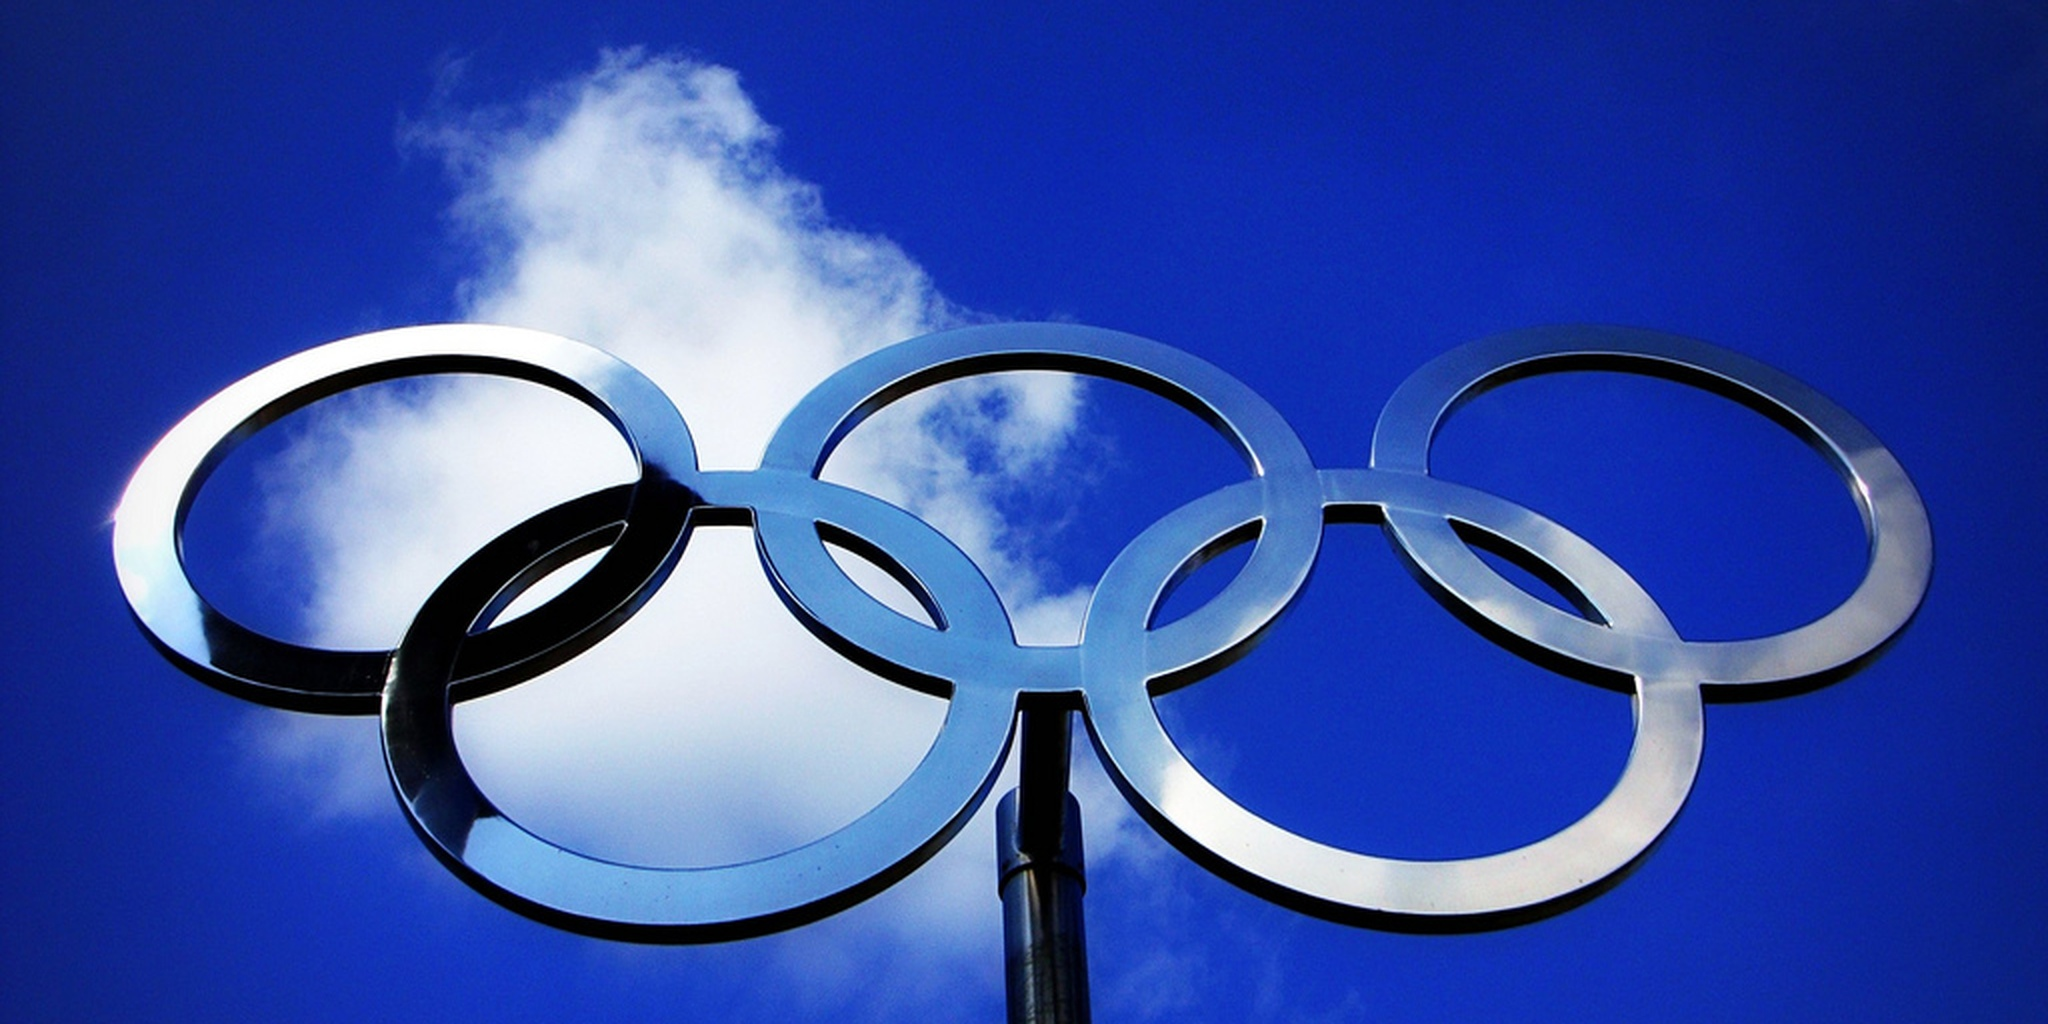 Olympic Rings | Flickr - Photo Sharing!